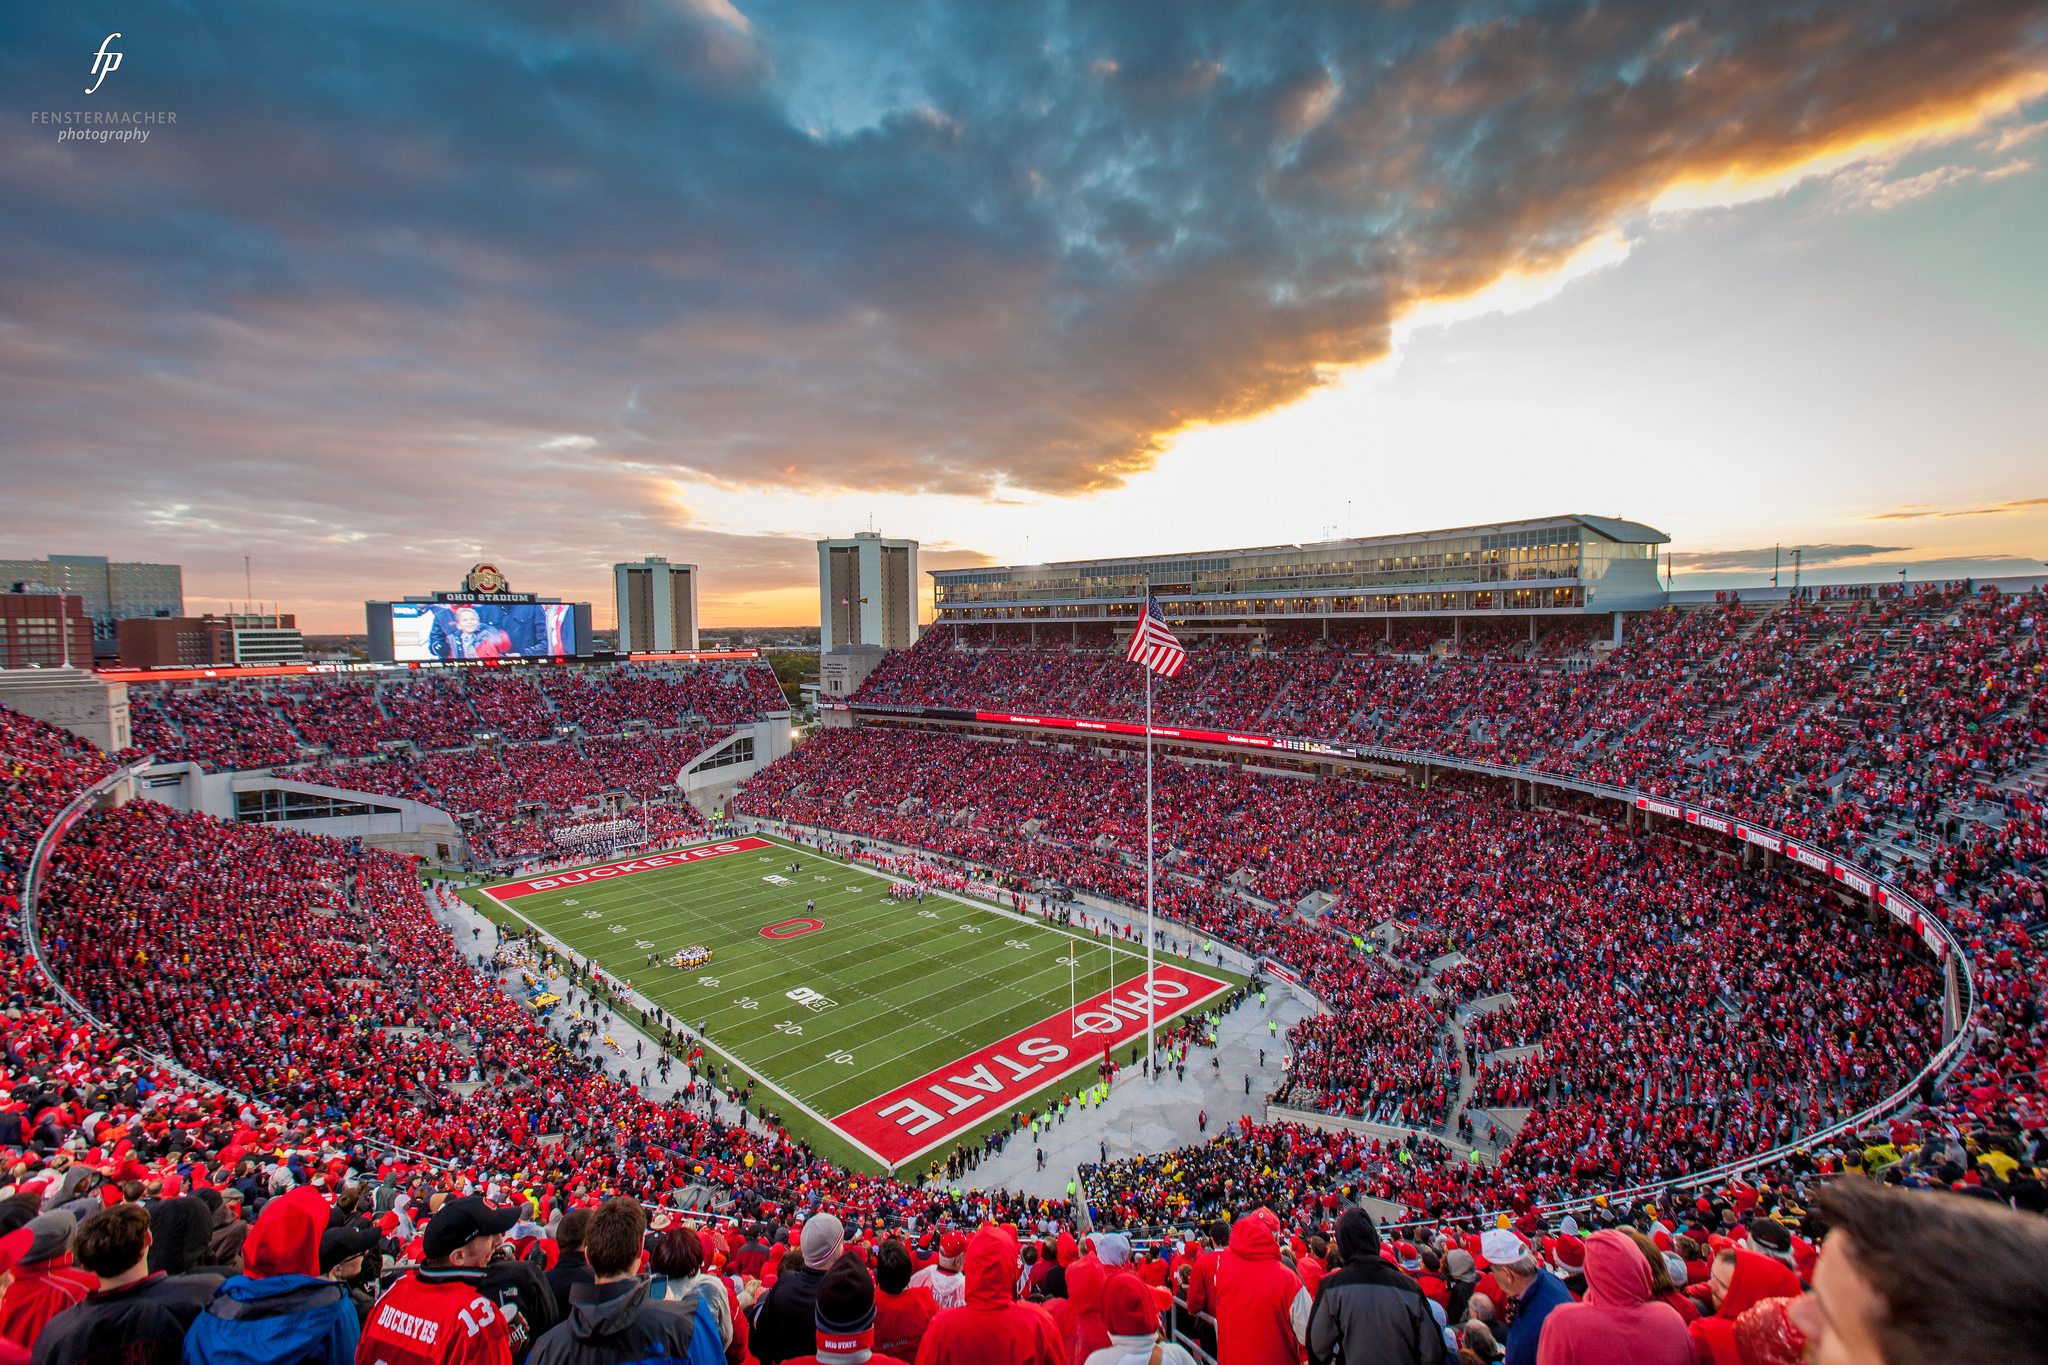 Ohio state stadium filled with fans